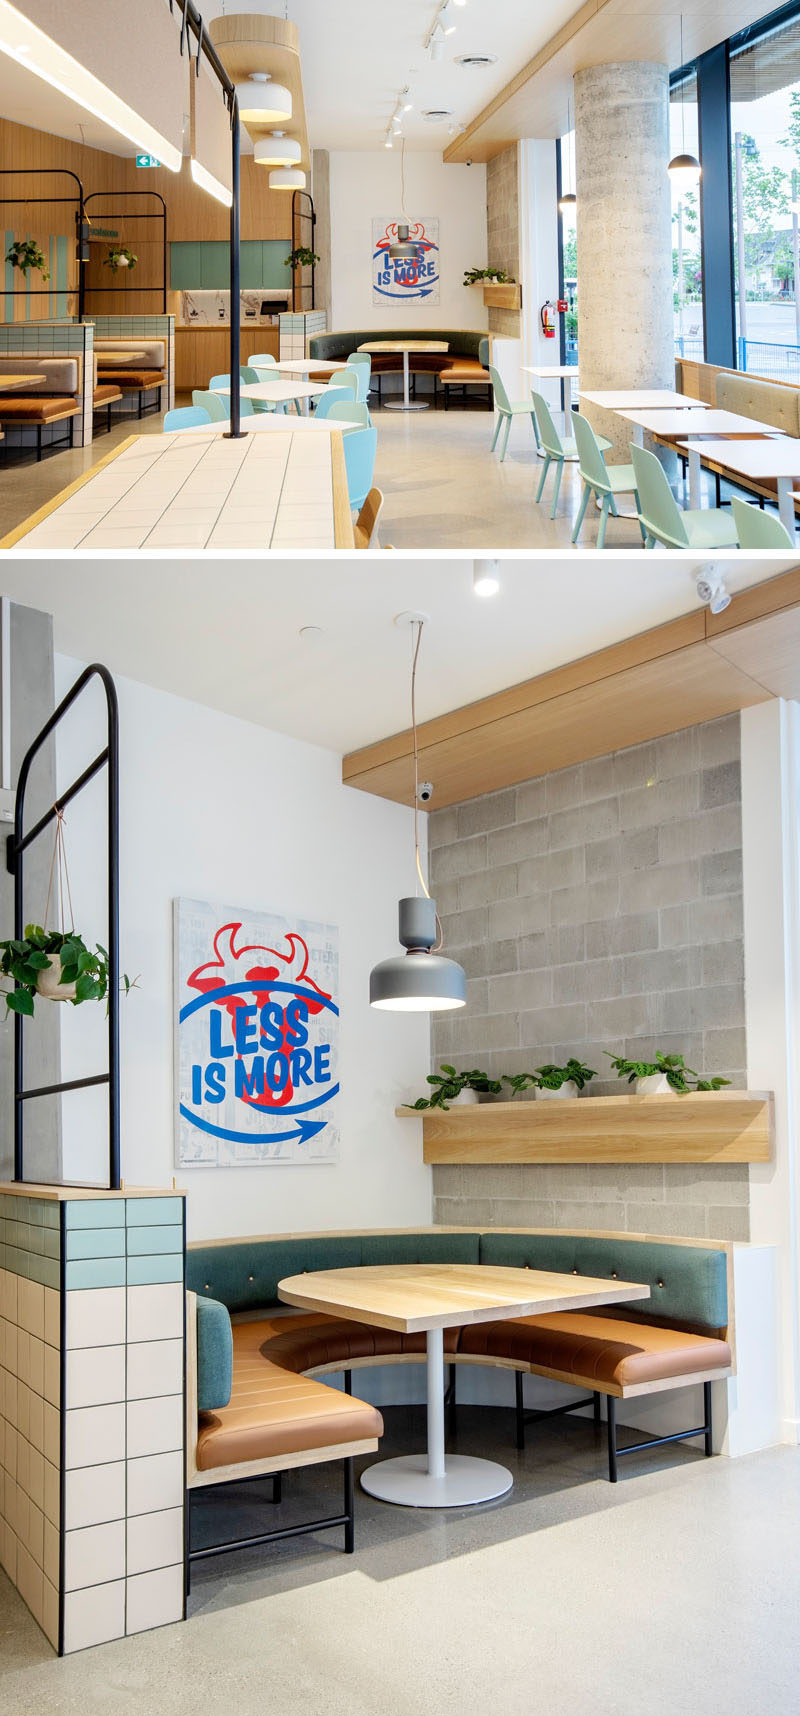 Restaurant Design - This modern fast-casual restaurant includes natural and handmade finishes such as white oak, woven wool upholstery and hand-made glazed tiles. #ModernRestaurant #RestaurantIdeas #RestaurantDesign